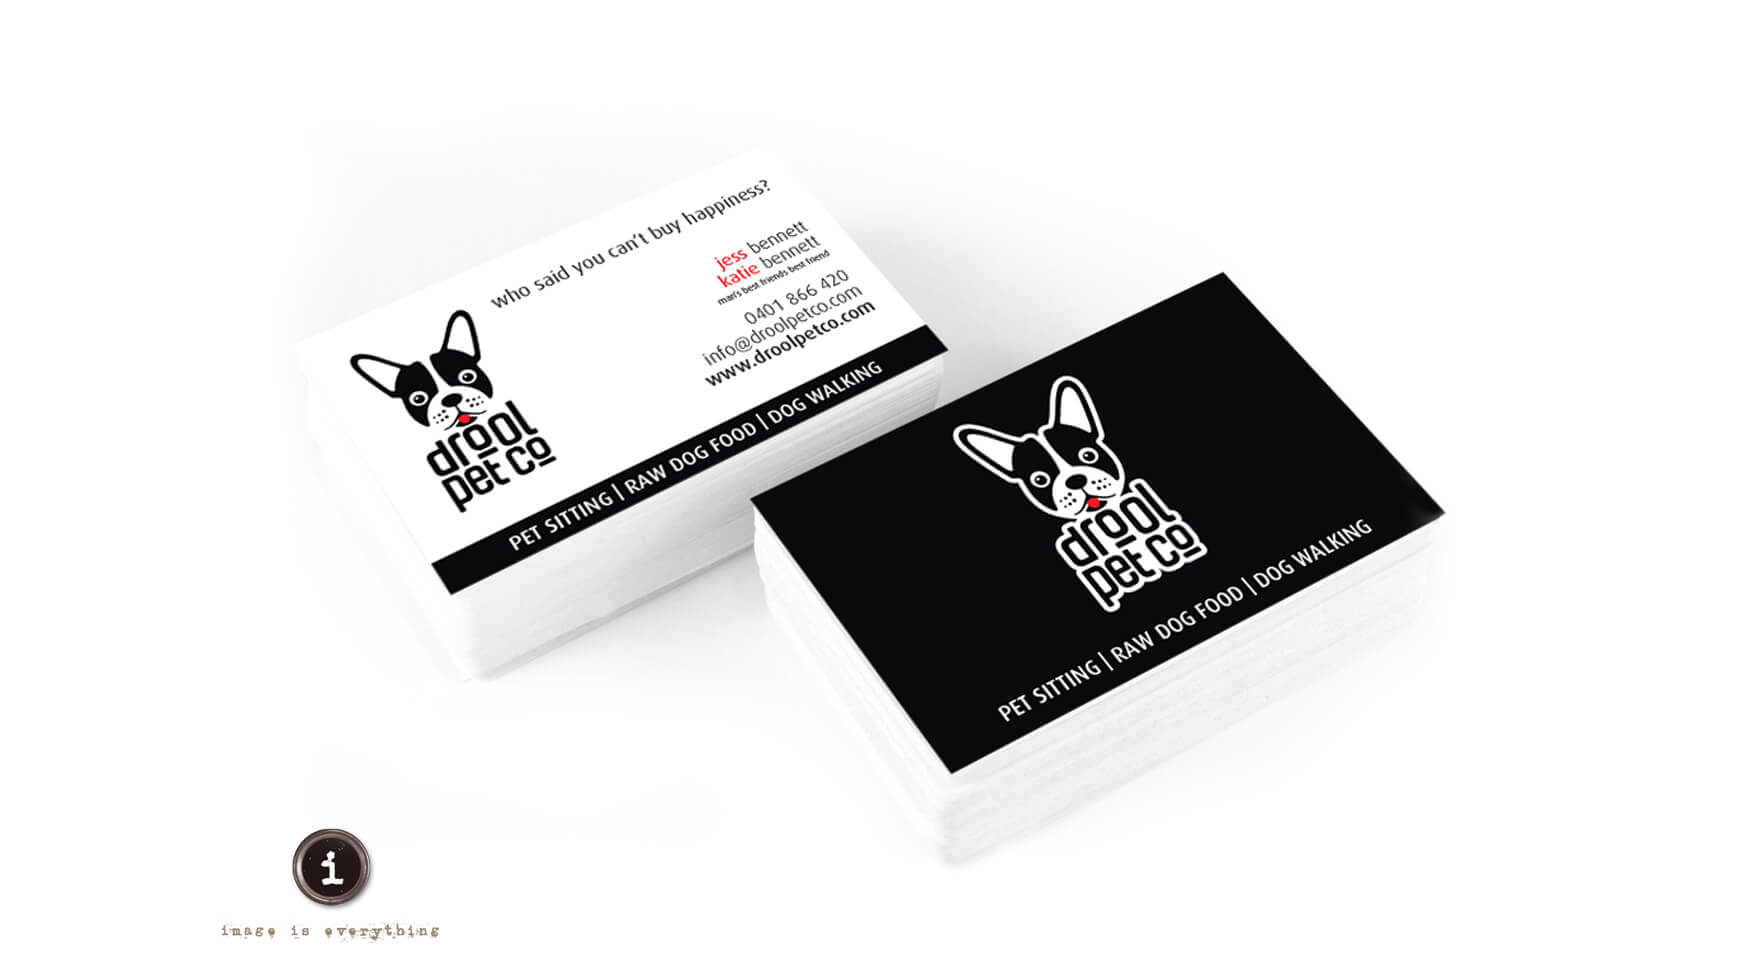 Icon Graphic Design Adelaide - Drool Pet Co. business cards, two stacks of cards with front on one stack and the back on the other stack.